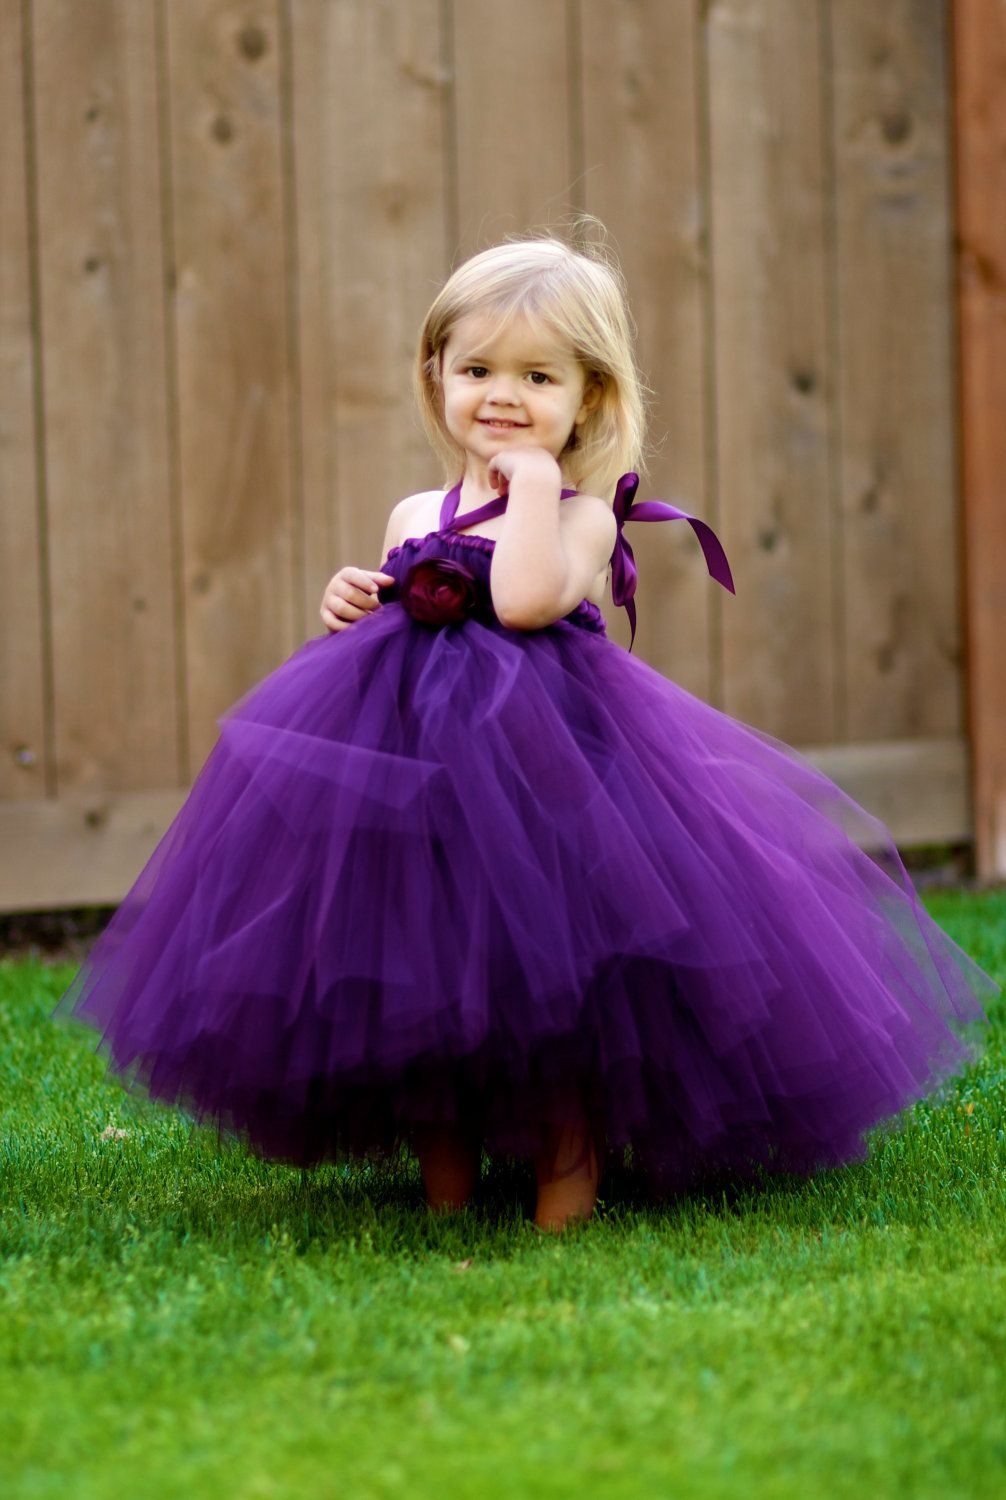 Tutu dress. Just darling! | Future Mrs. Patton <3 | Pinterest ...